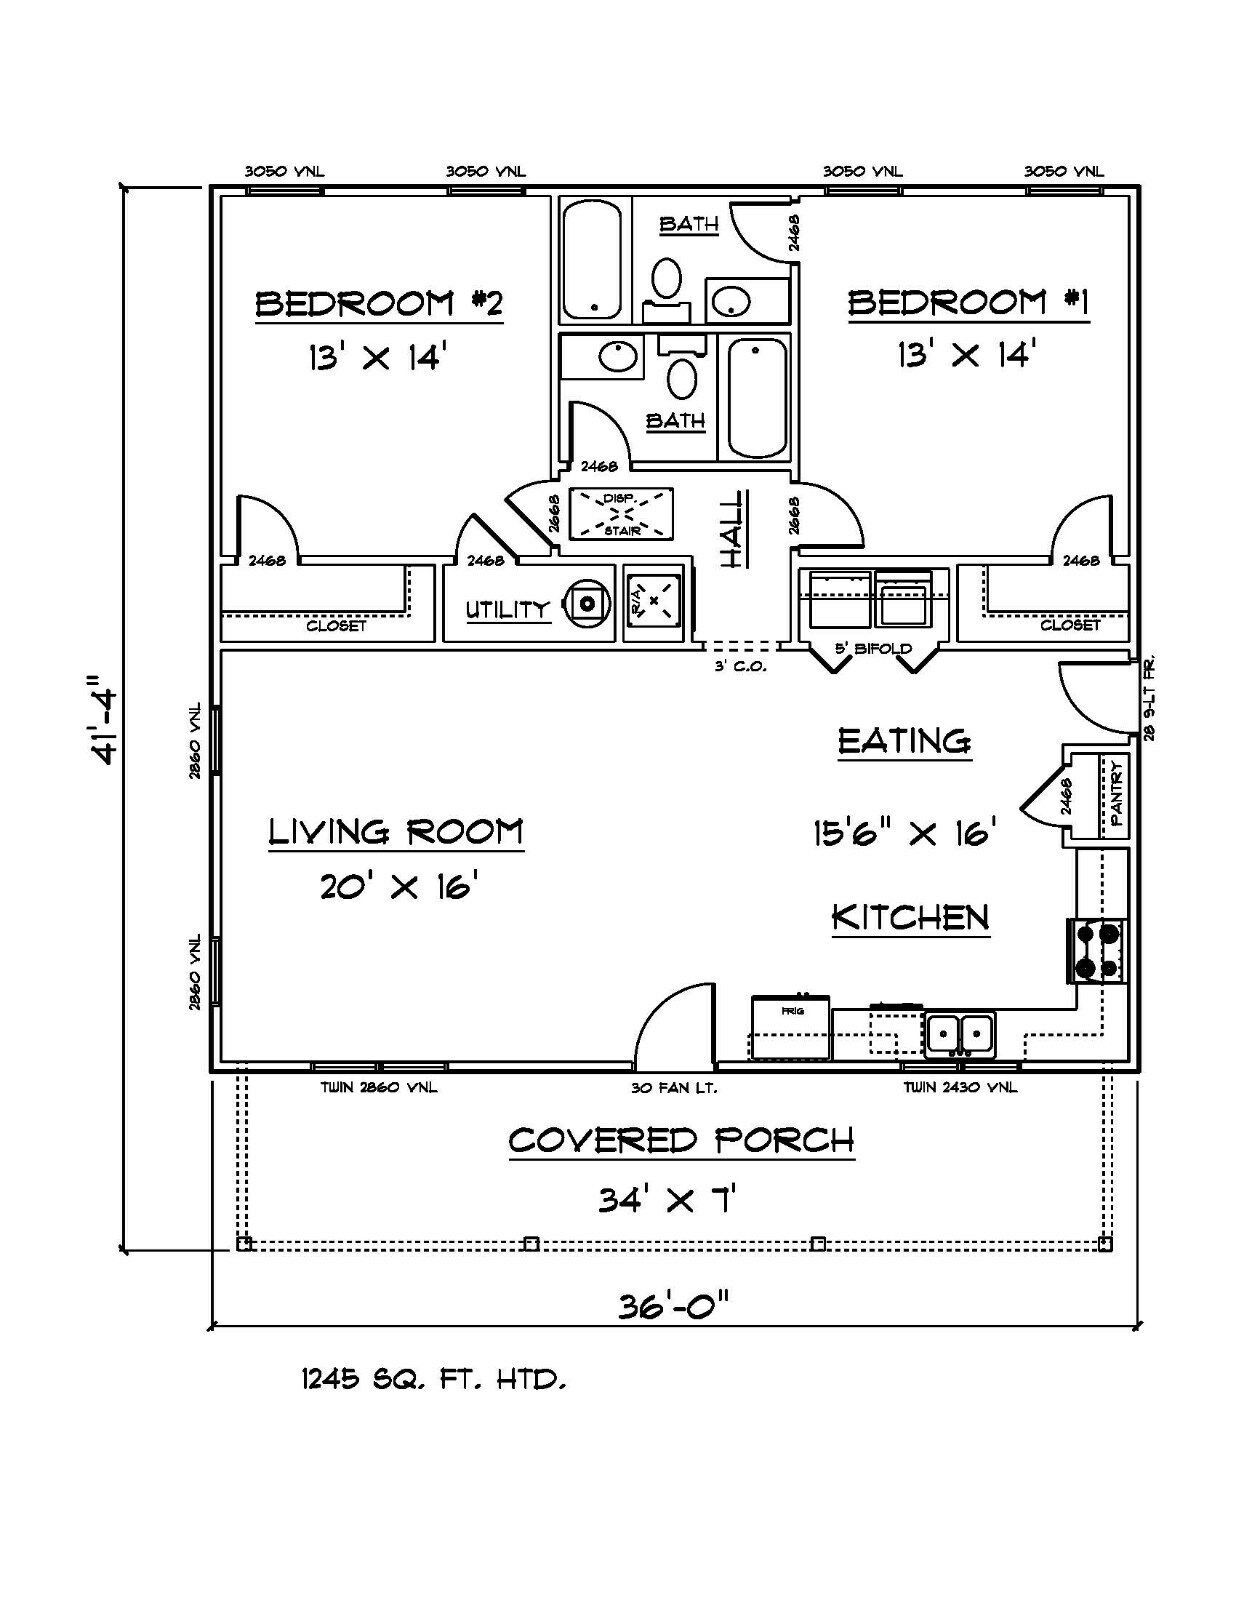 House Plans For 1245 Sq Ft 2 Bedroom 2 Bath House 40 00 Please Note An Email Address Is Requ Two Bedroom House House Plan With Loft Building Plans House